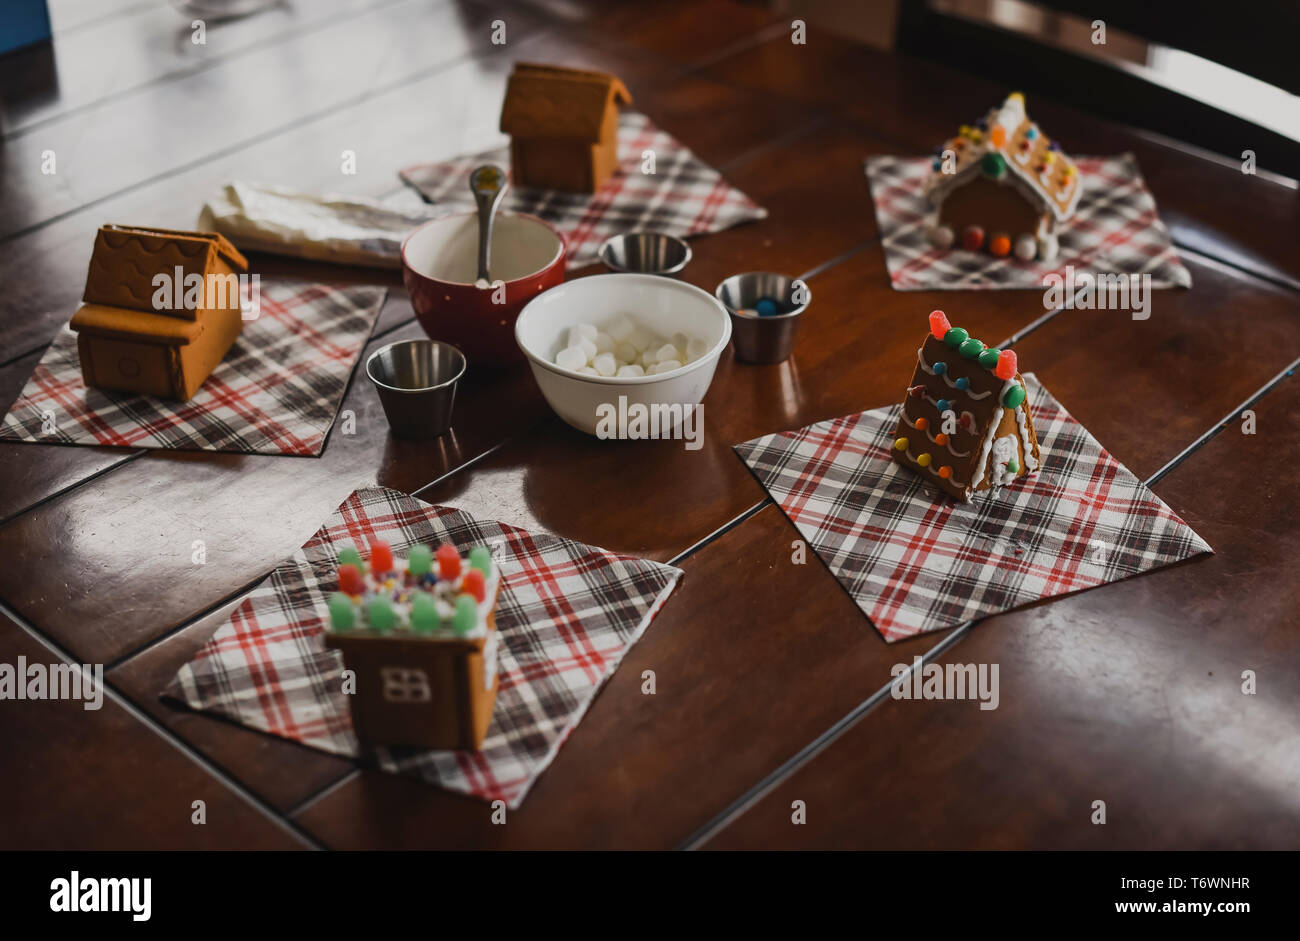 Gingerbread houses ready for decorating with icing and candies. - Stock Image